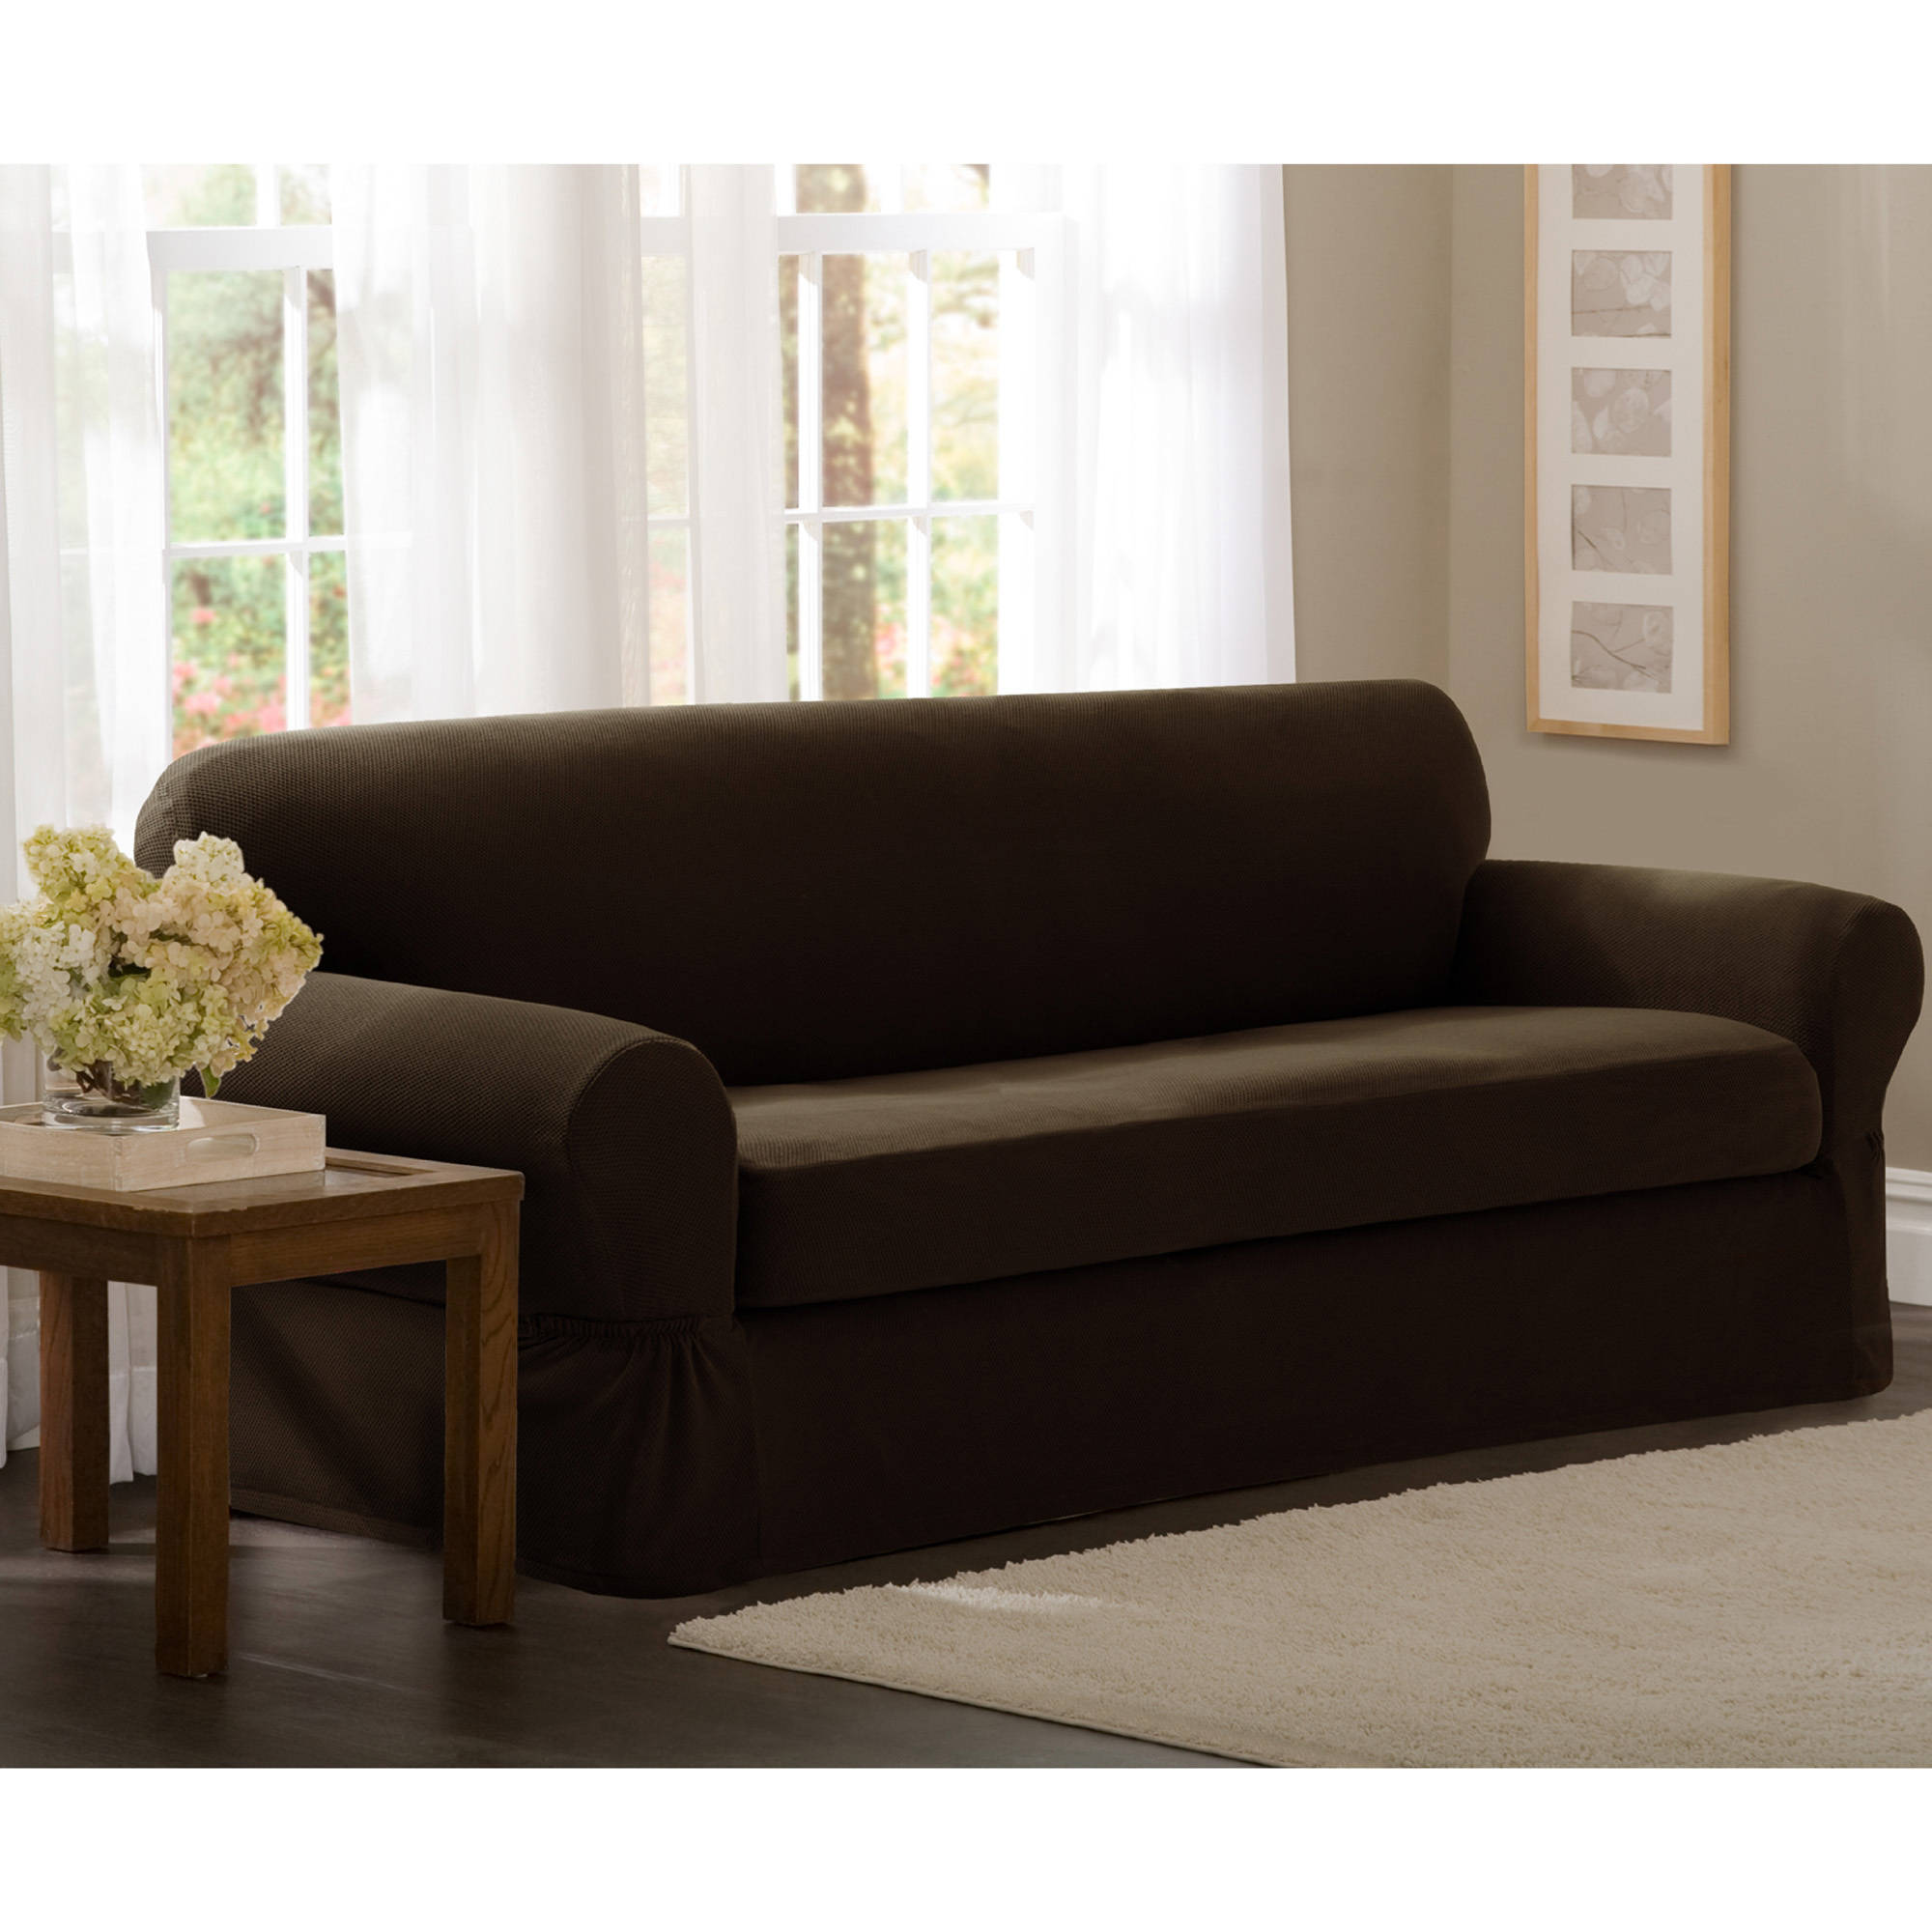 Maytex Stretch Pixel 2 Piece Loveseat Slipcover Walmart